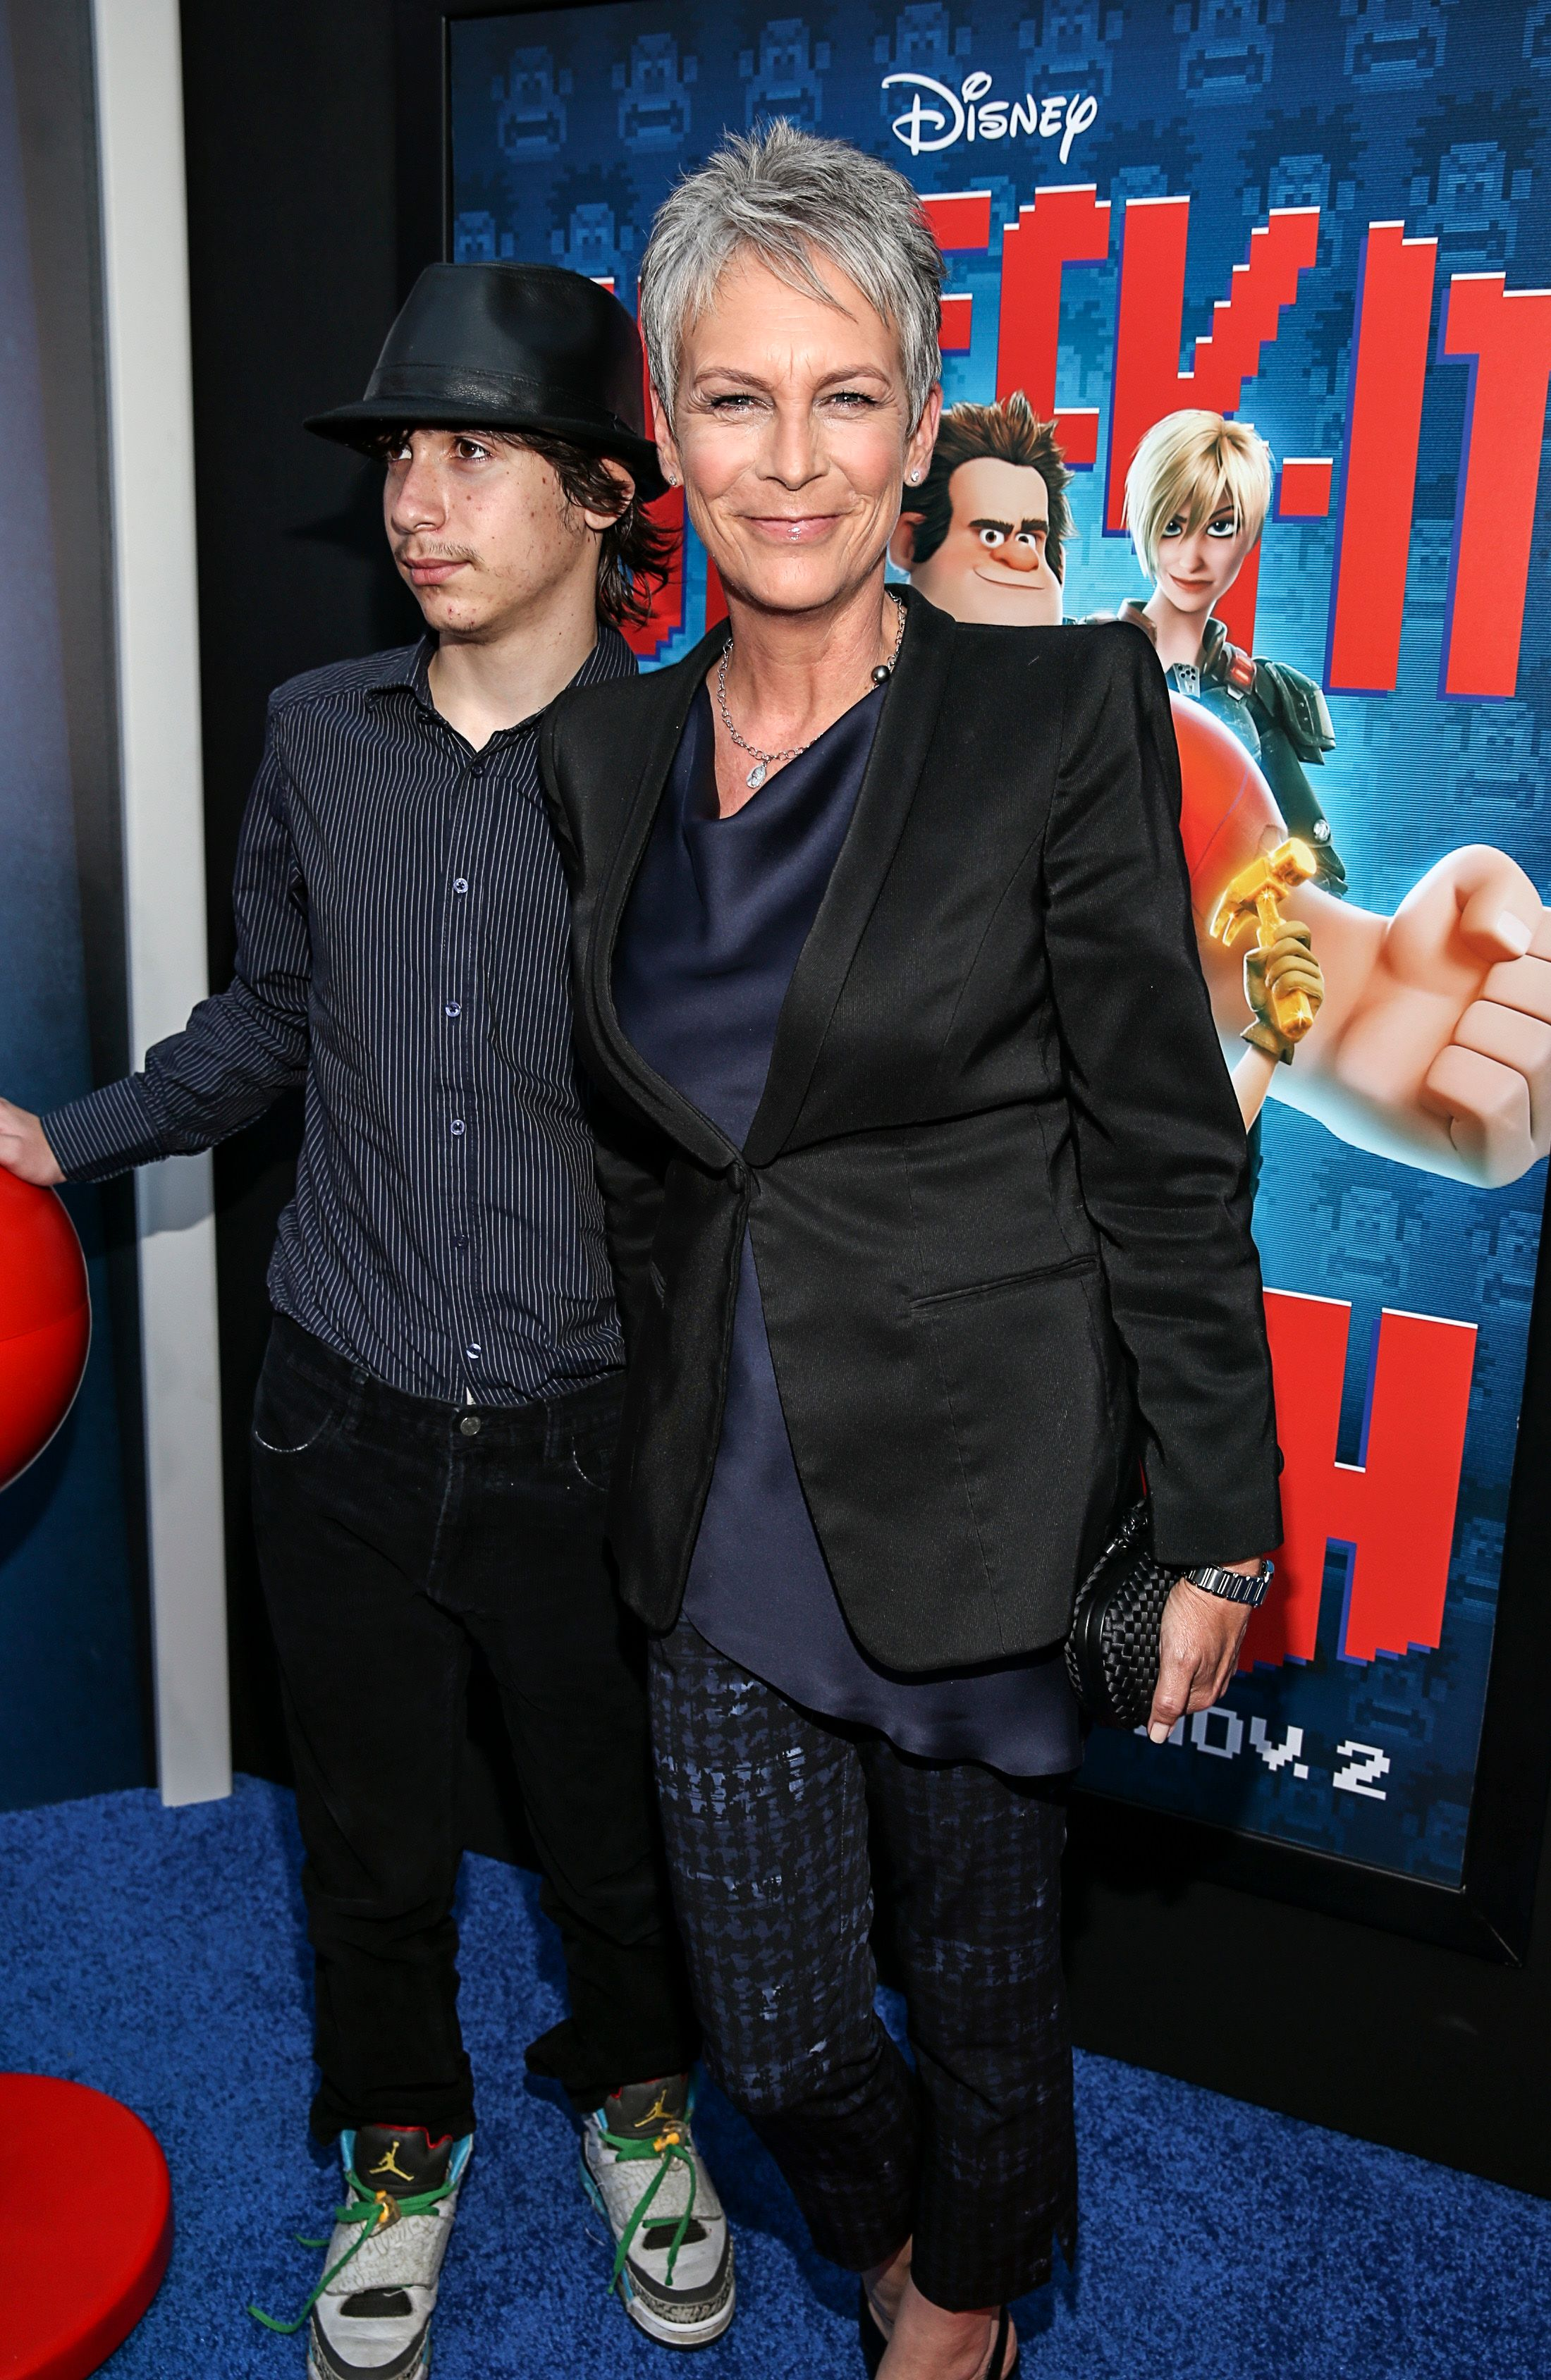 """Jamie Lee Curtis and Thomas Guest during the Premiere Of Walt Disney Animation Studios' """"Wreck-It Ralph"""" at the El Capitan Theatre on October 29, 2012   Photo: Getty Images"""